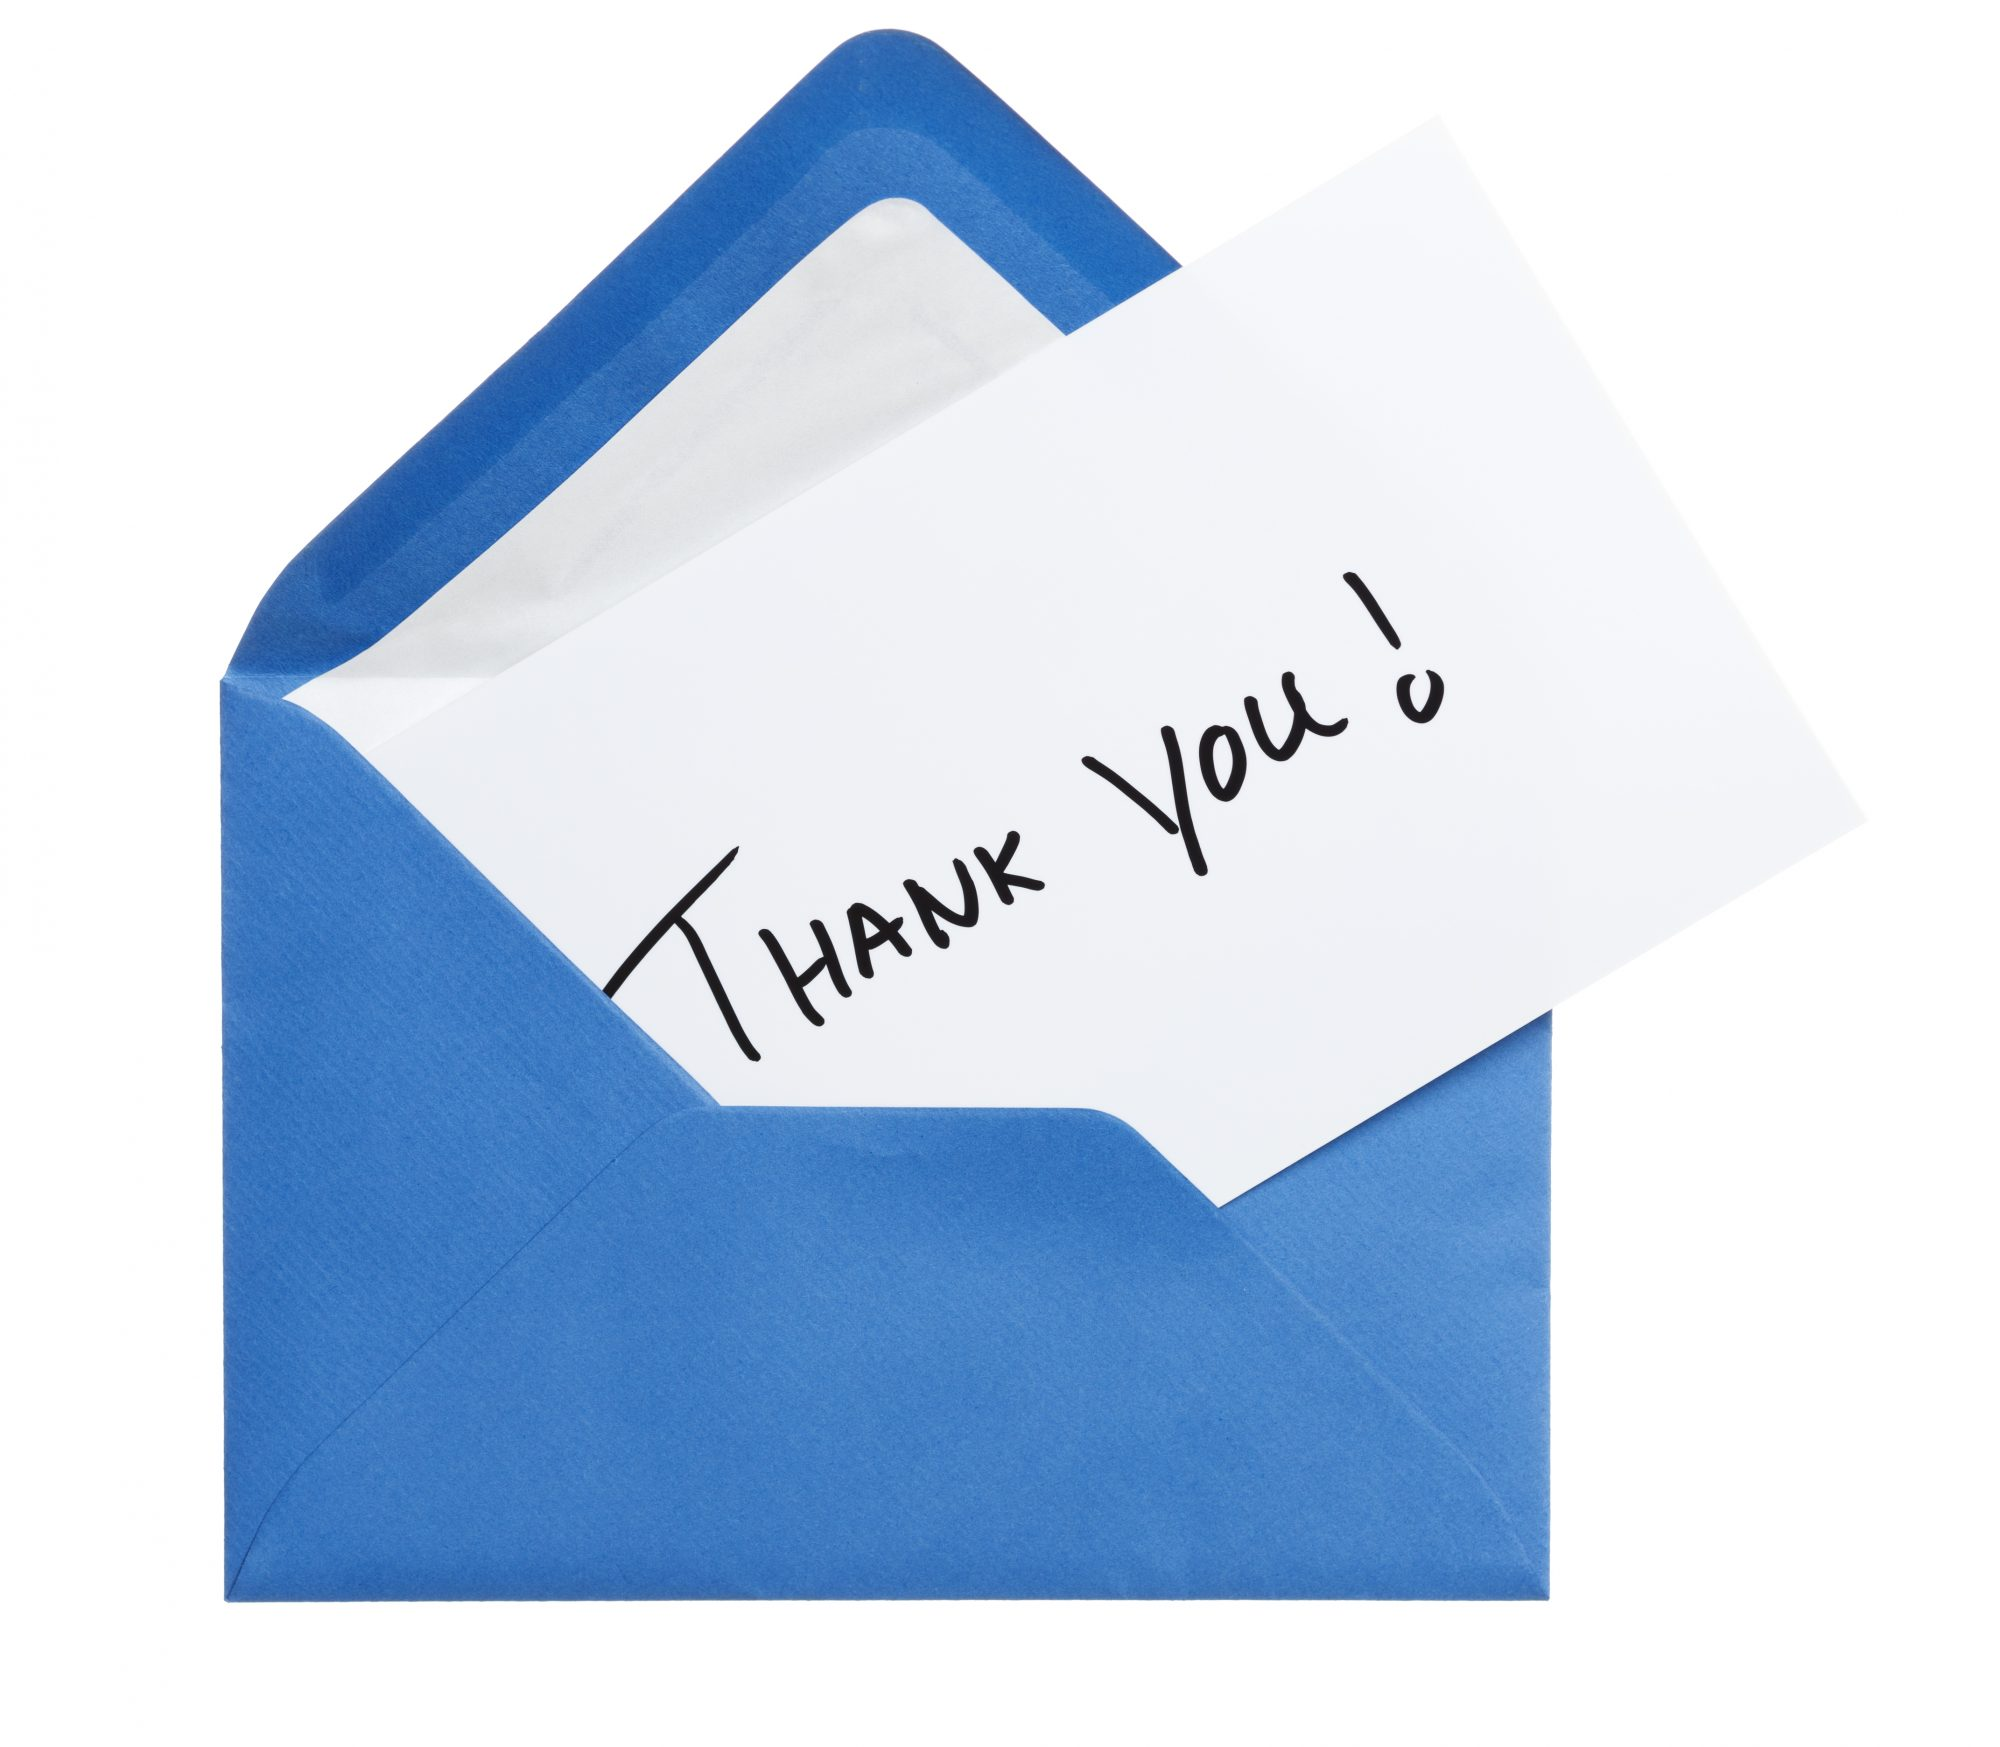 Thank-you note in a blue envelope